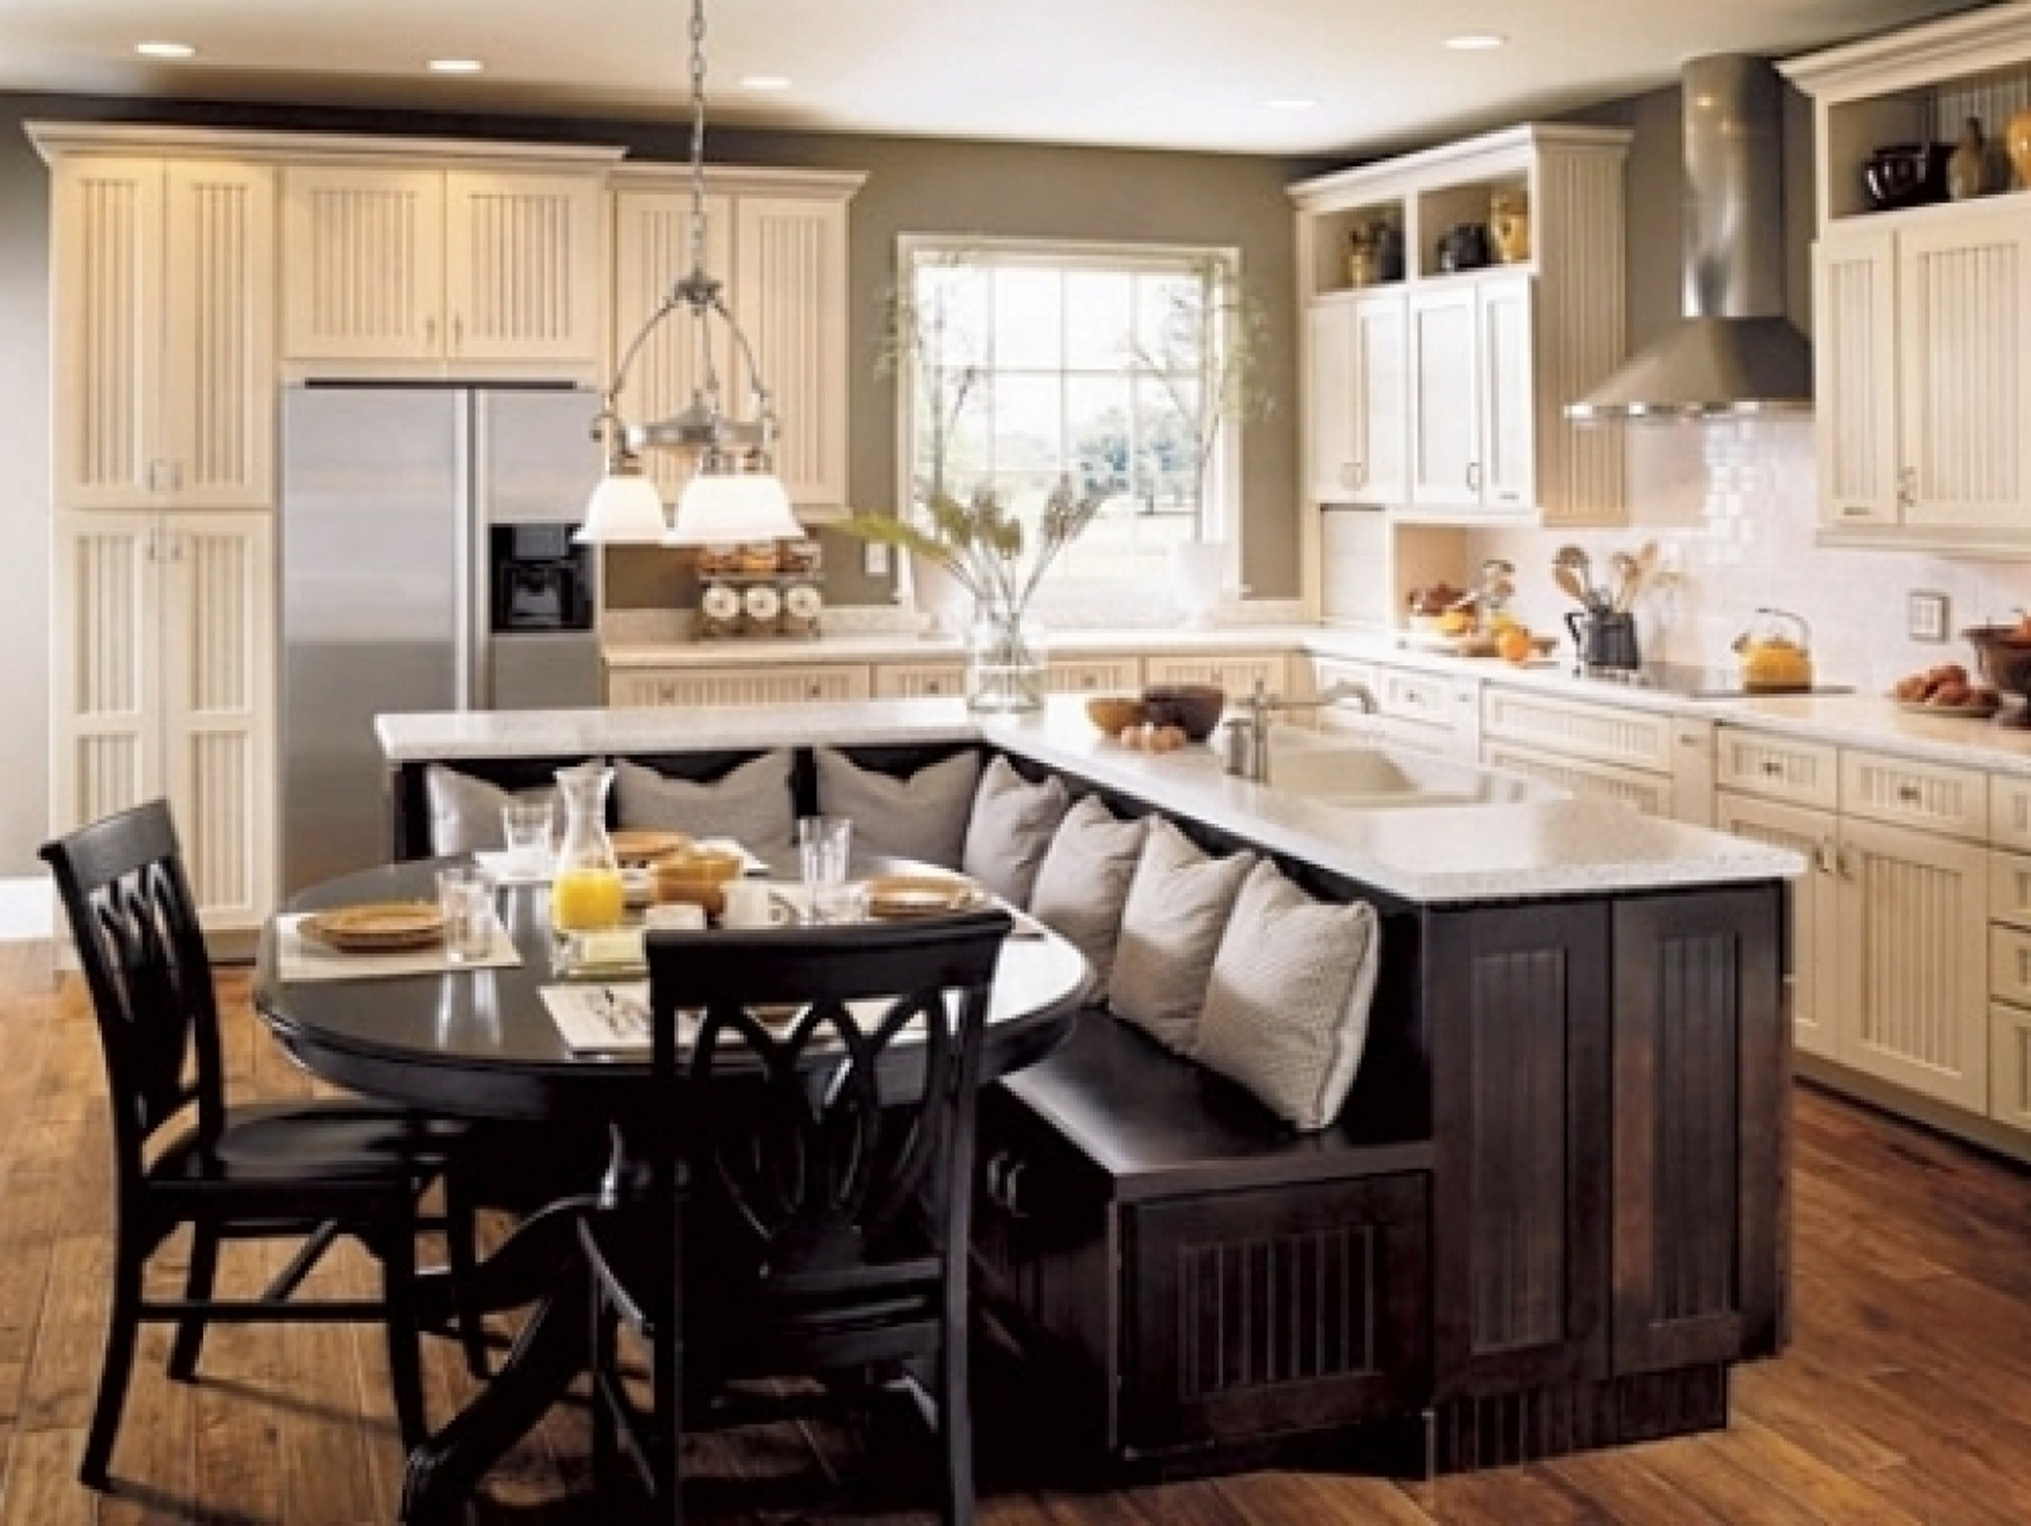 20 Captivating Rv Kitchen Remodel Ideas That You Have To